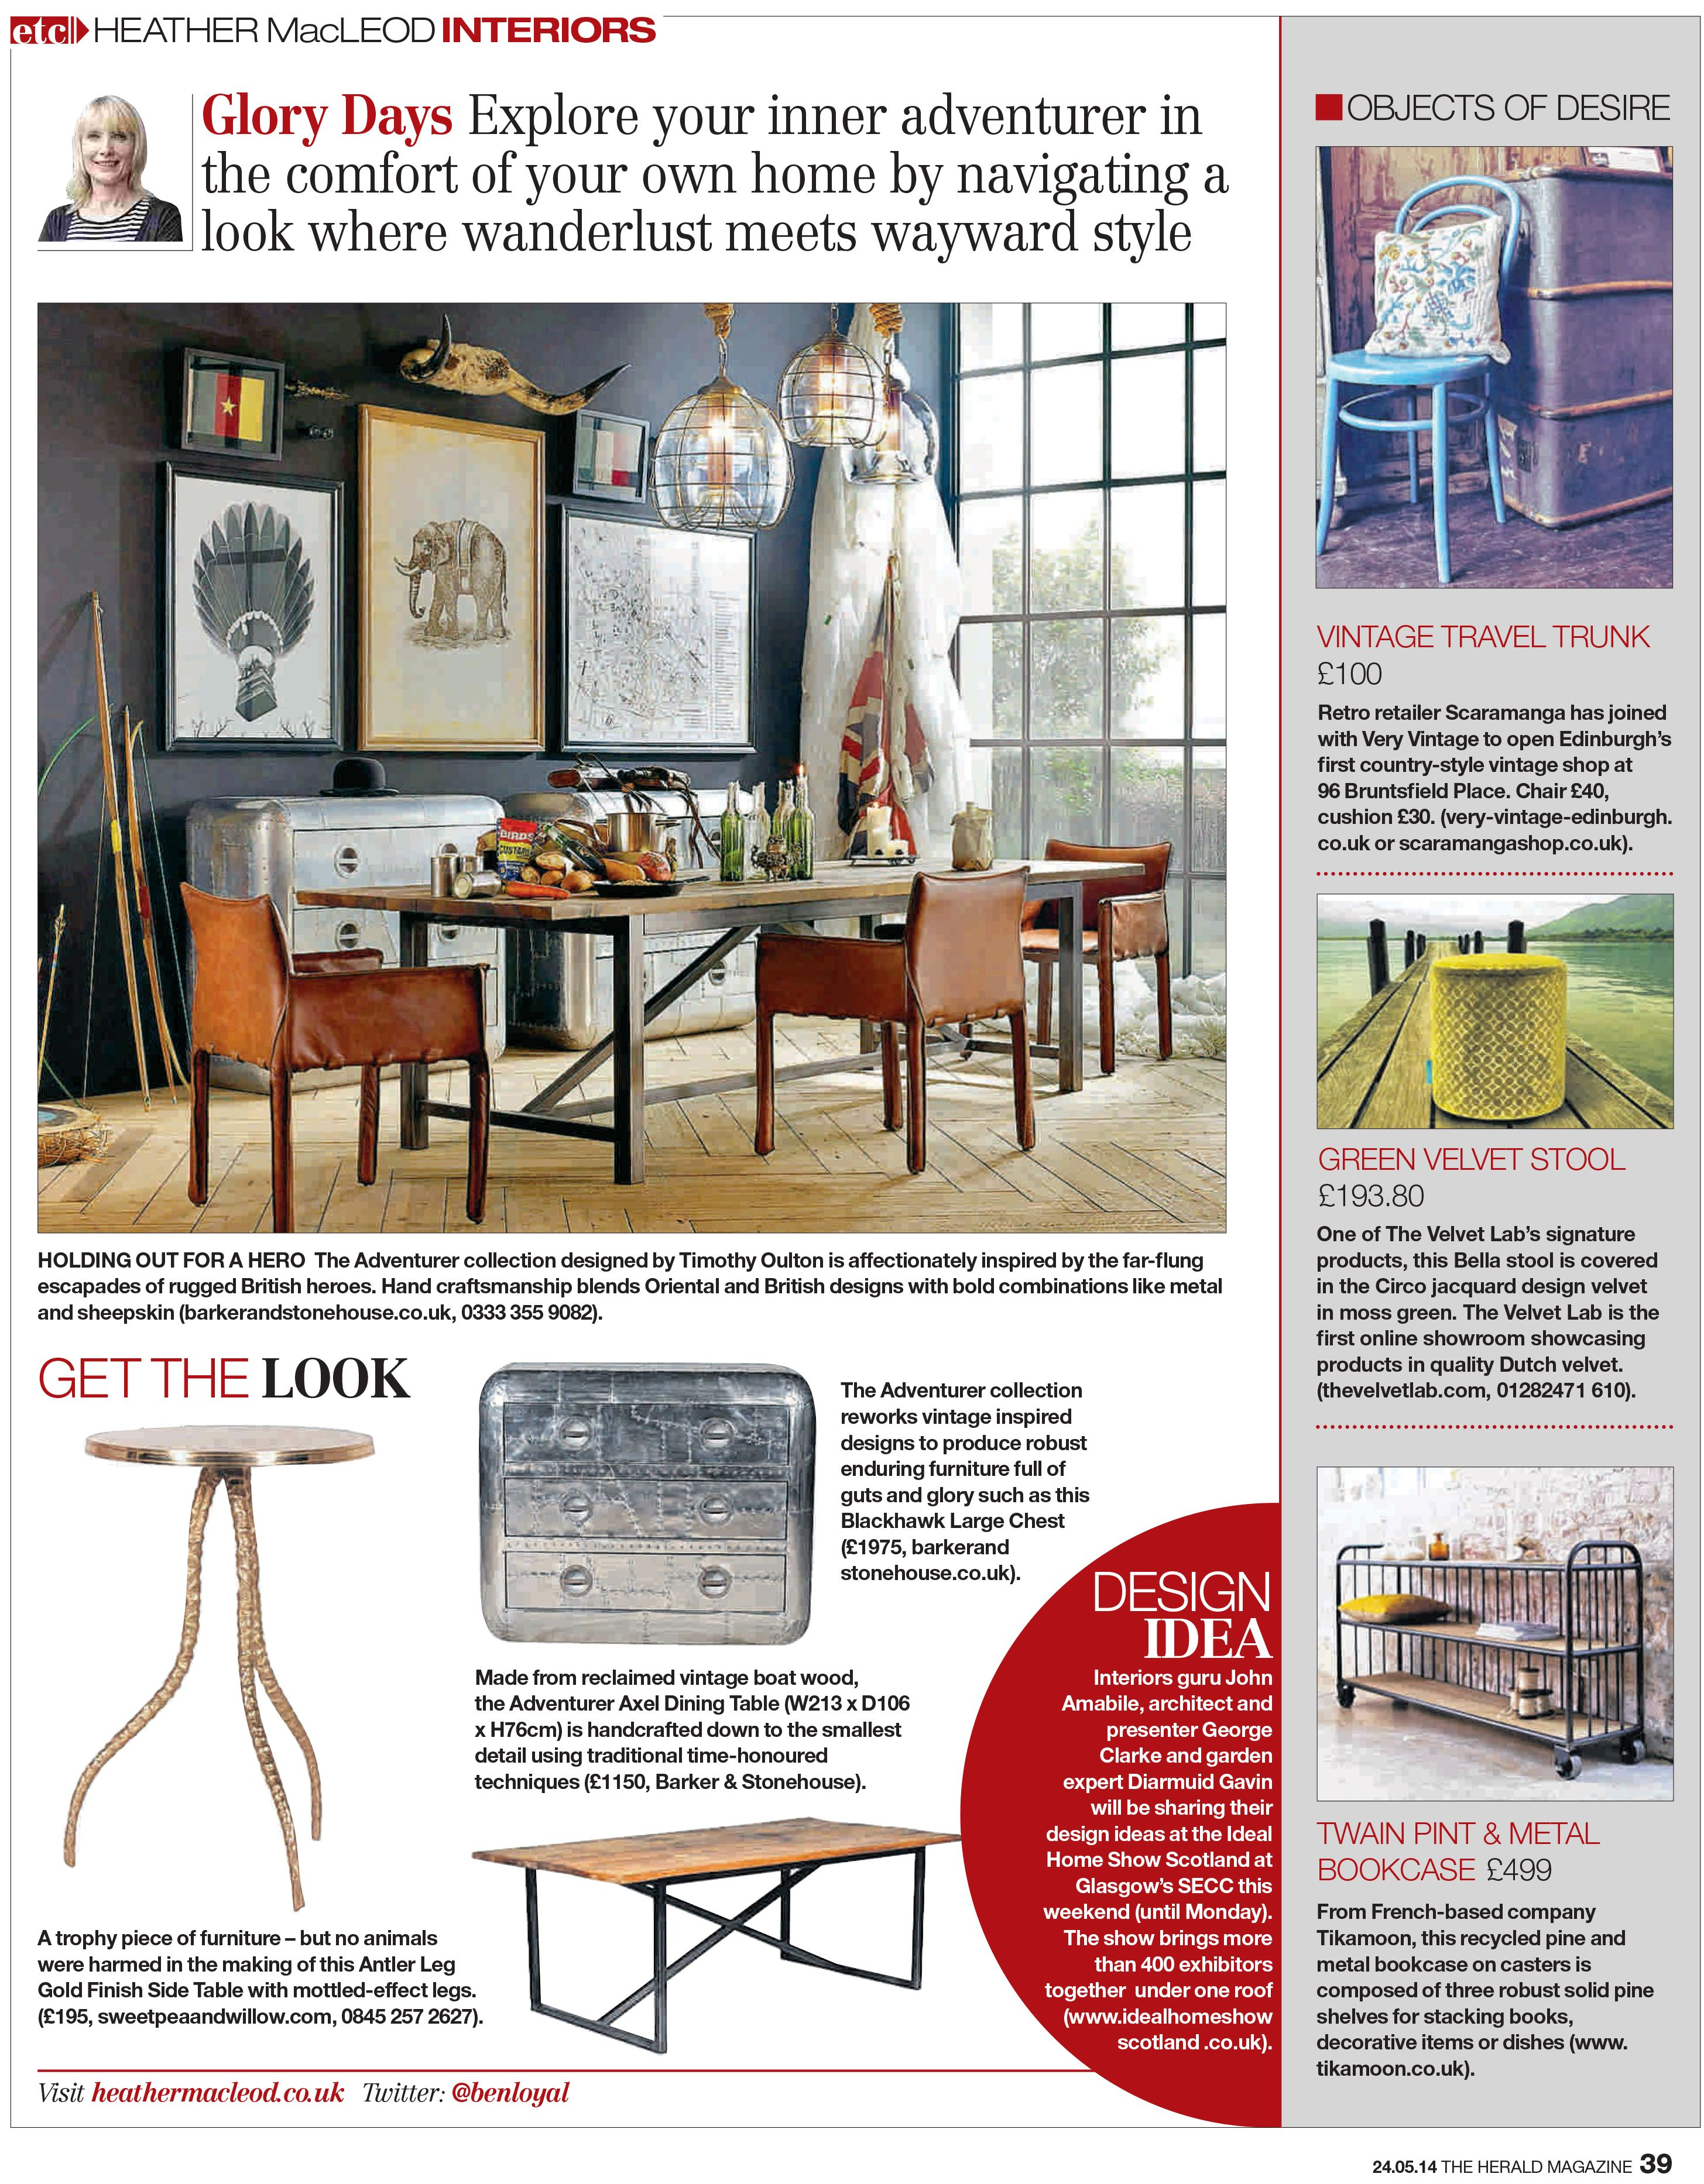 HEATHER MacLEOD INTERIORS - Thank you!  Lovely little feature here in The Herald Magazine! Our BELLA stool covered in ROYAL DUTCH VELVET; DESIGN CIRCO MOSS GREEN.   Available online here: http://www.thevelvetlab.com/en/stools/bella/130#141:174;Circo+Mossgreen+7270:175;Circo+Mossgreen+7270:  Just love velvets! #velvet #design #personalize #dutchdesign